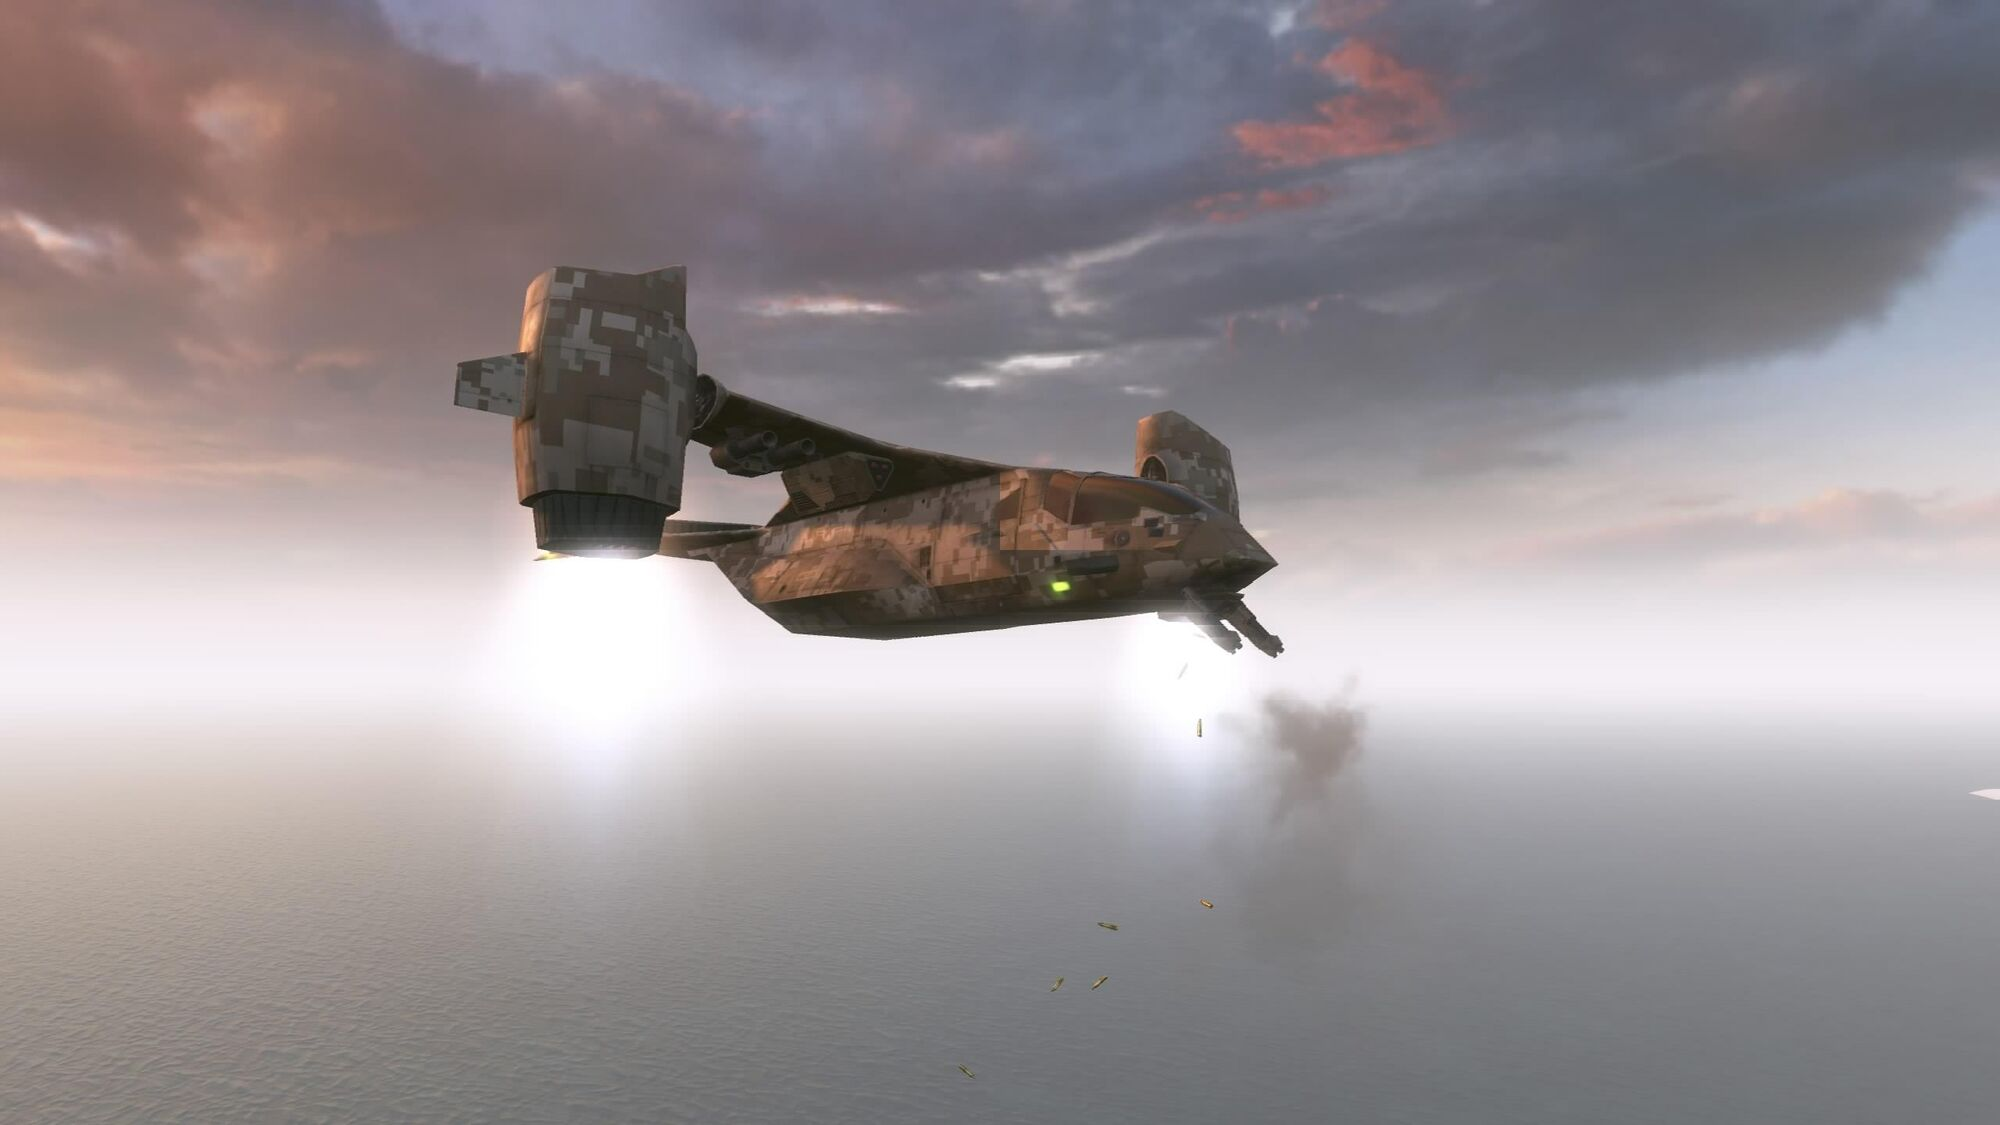 call of duty black ops 3 zombies maps with Vtol Warship on Content Collection 1 likewise Coalescence Corporation moreover 5 Official Concept Art Images For Advanced Warfare Reckoning Dlc also File Seraph BO3 additionally Underpass.